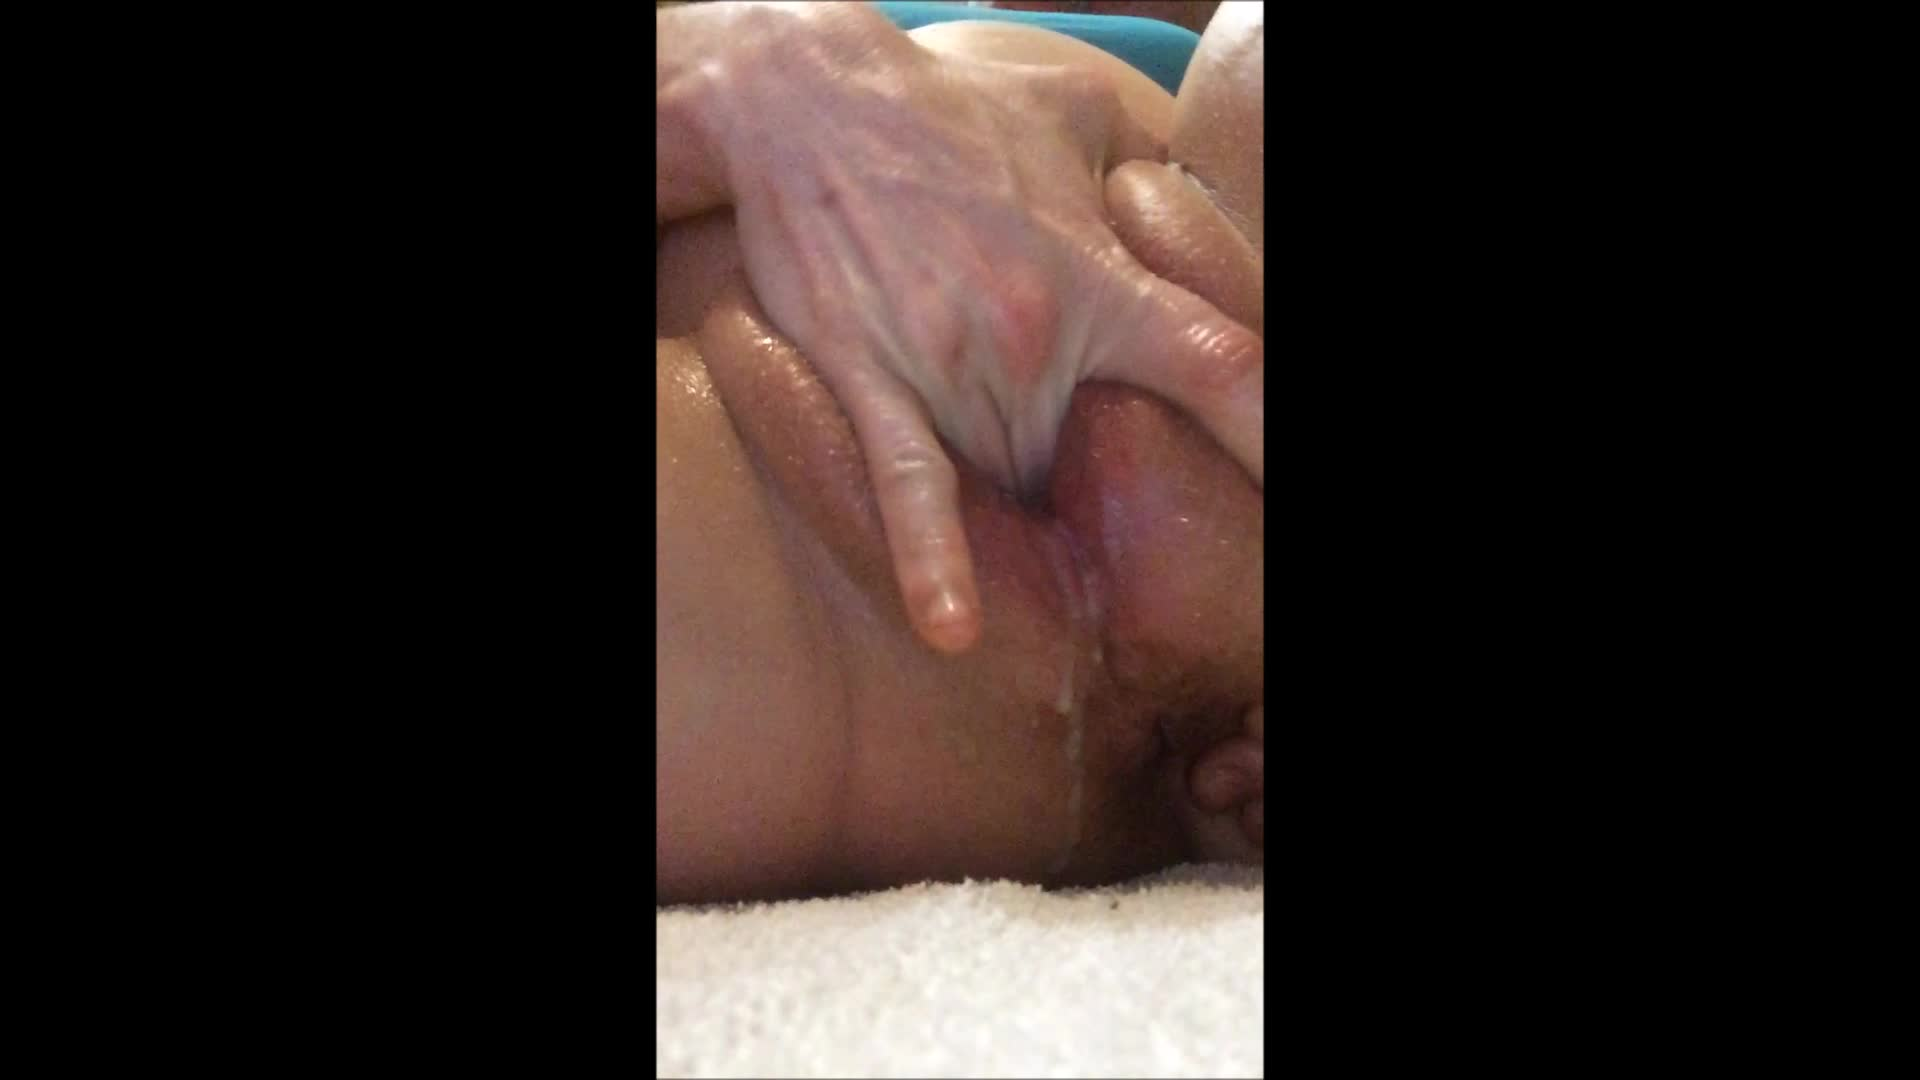 Ashley Mercy'd vid